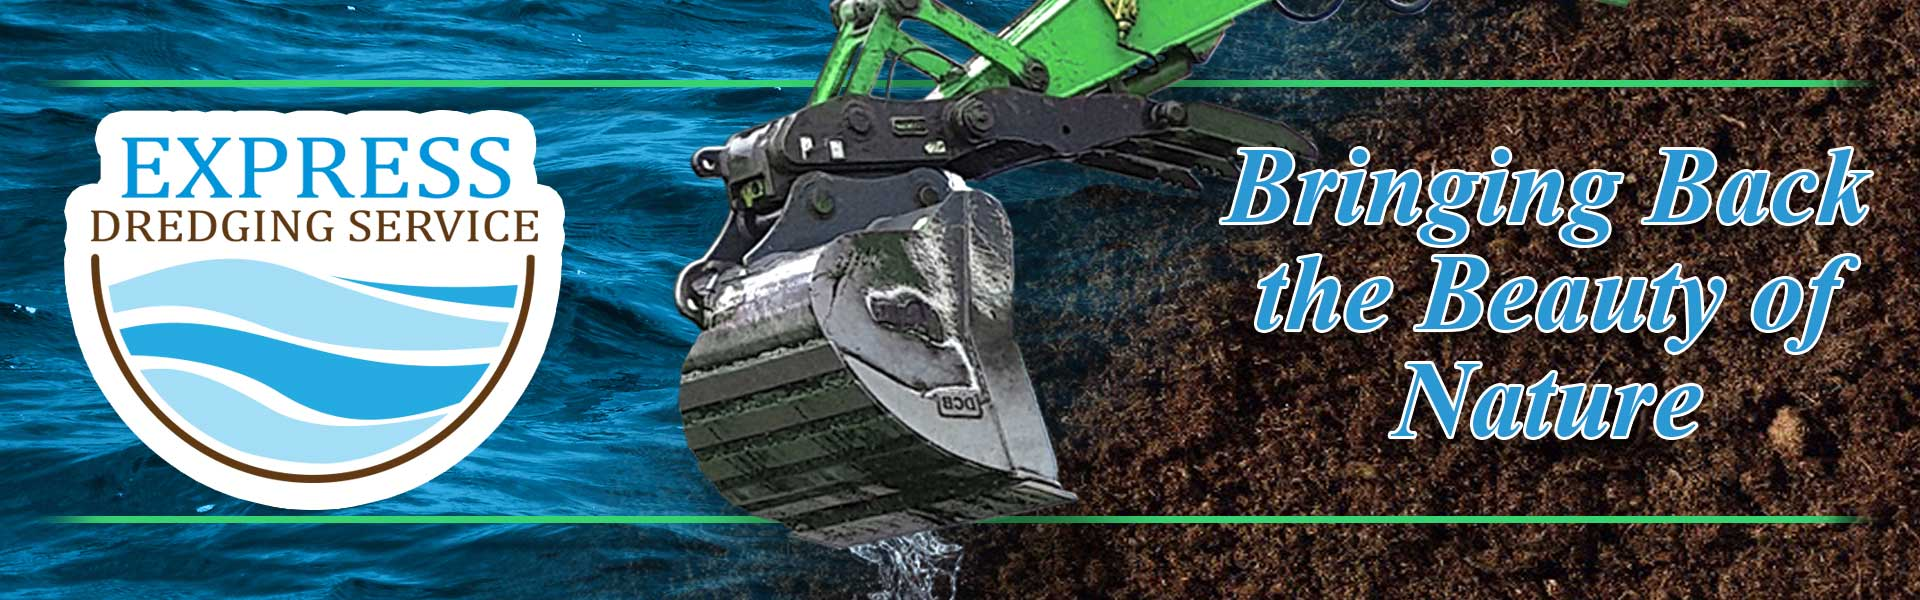 Express Dredge Service - Kettle Lake Soil - Full of Nutrients and